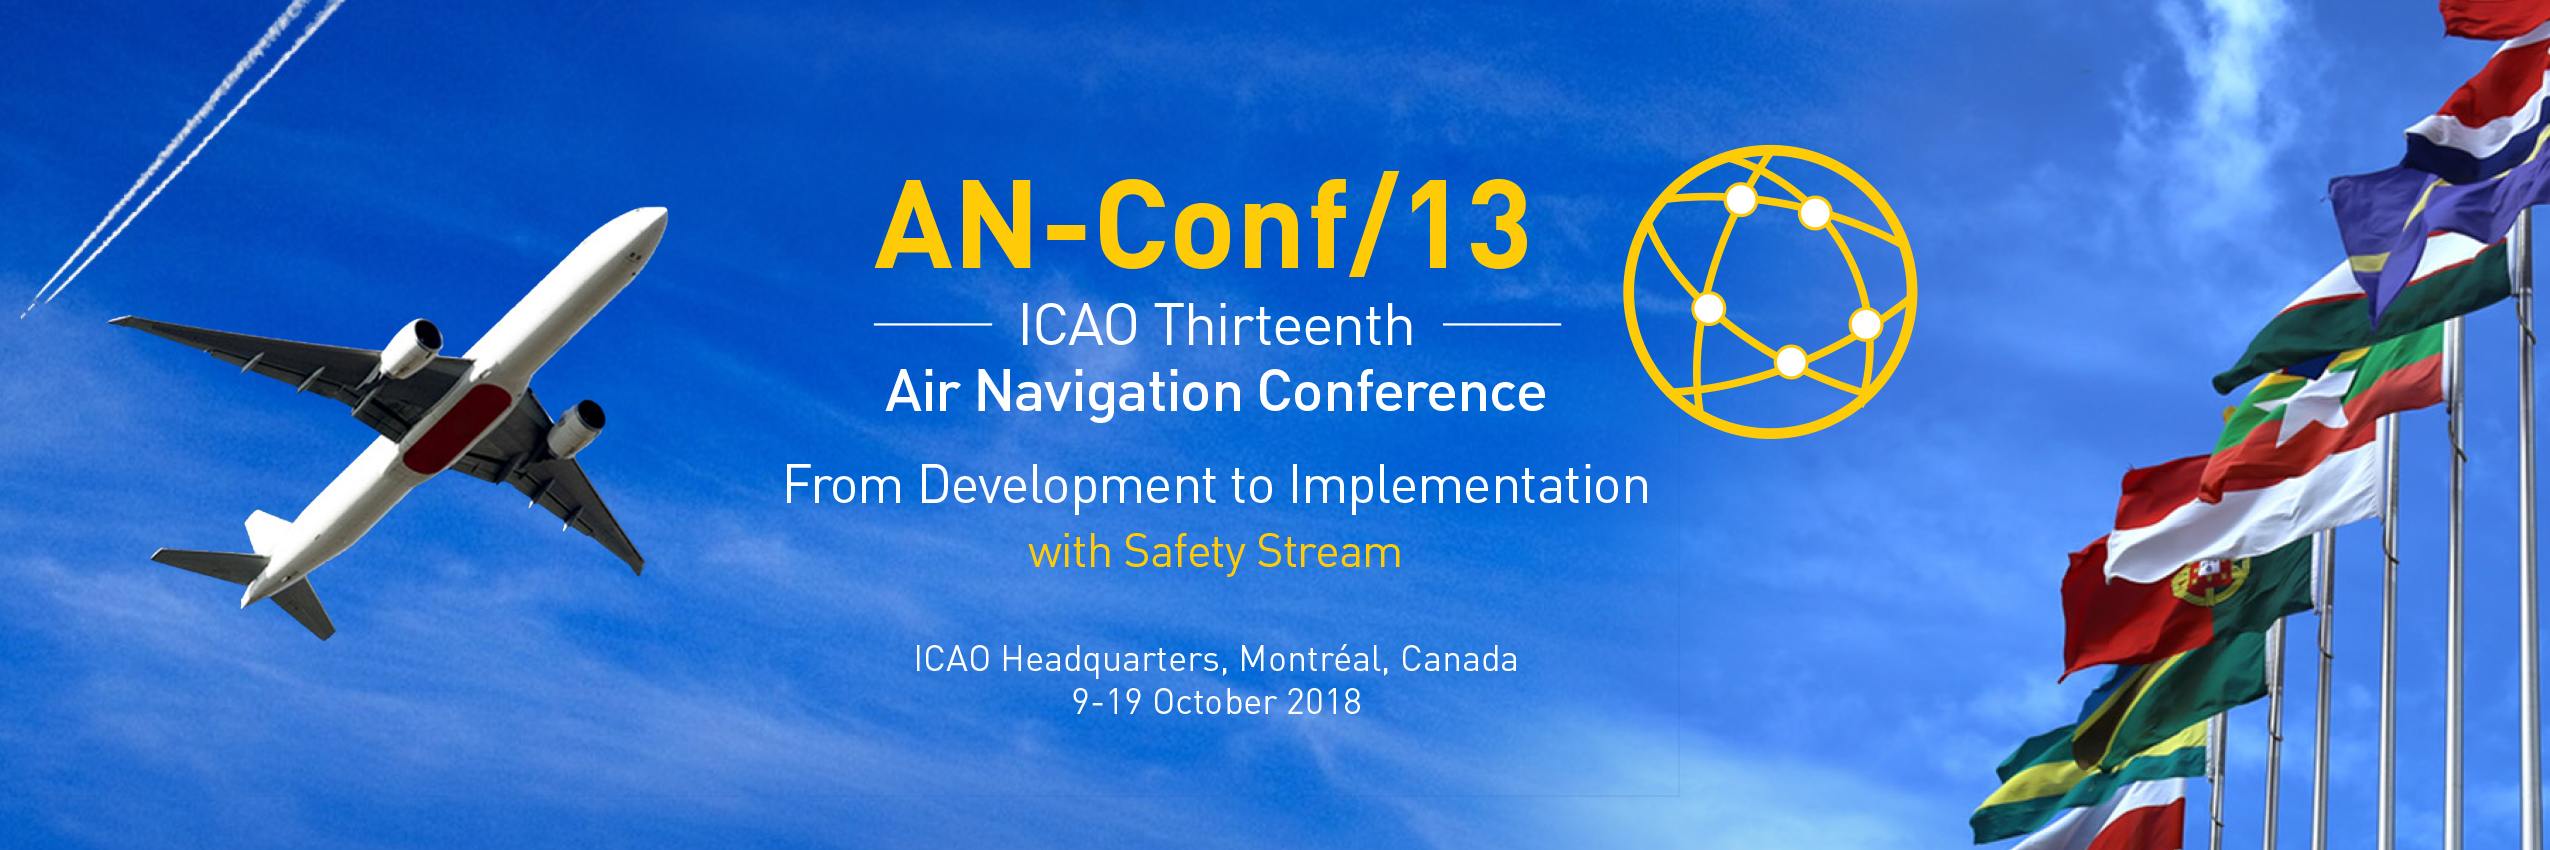 EDA promotes civil-military collaboration in the 13th ICAO Air Navigation Conference